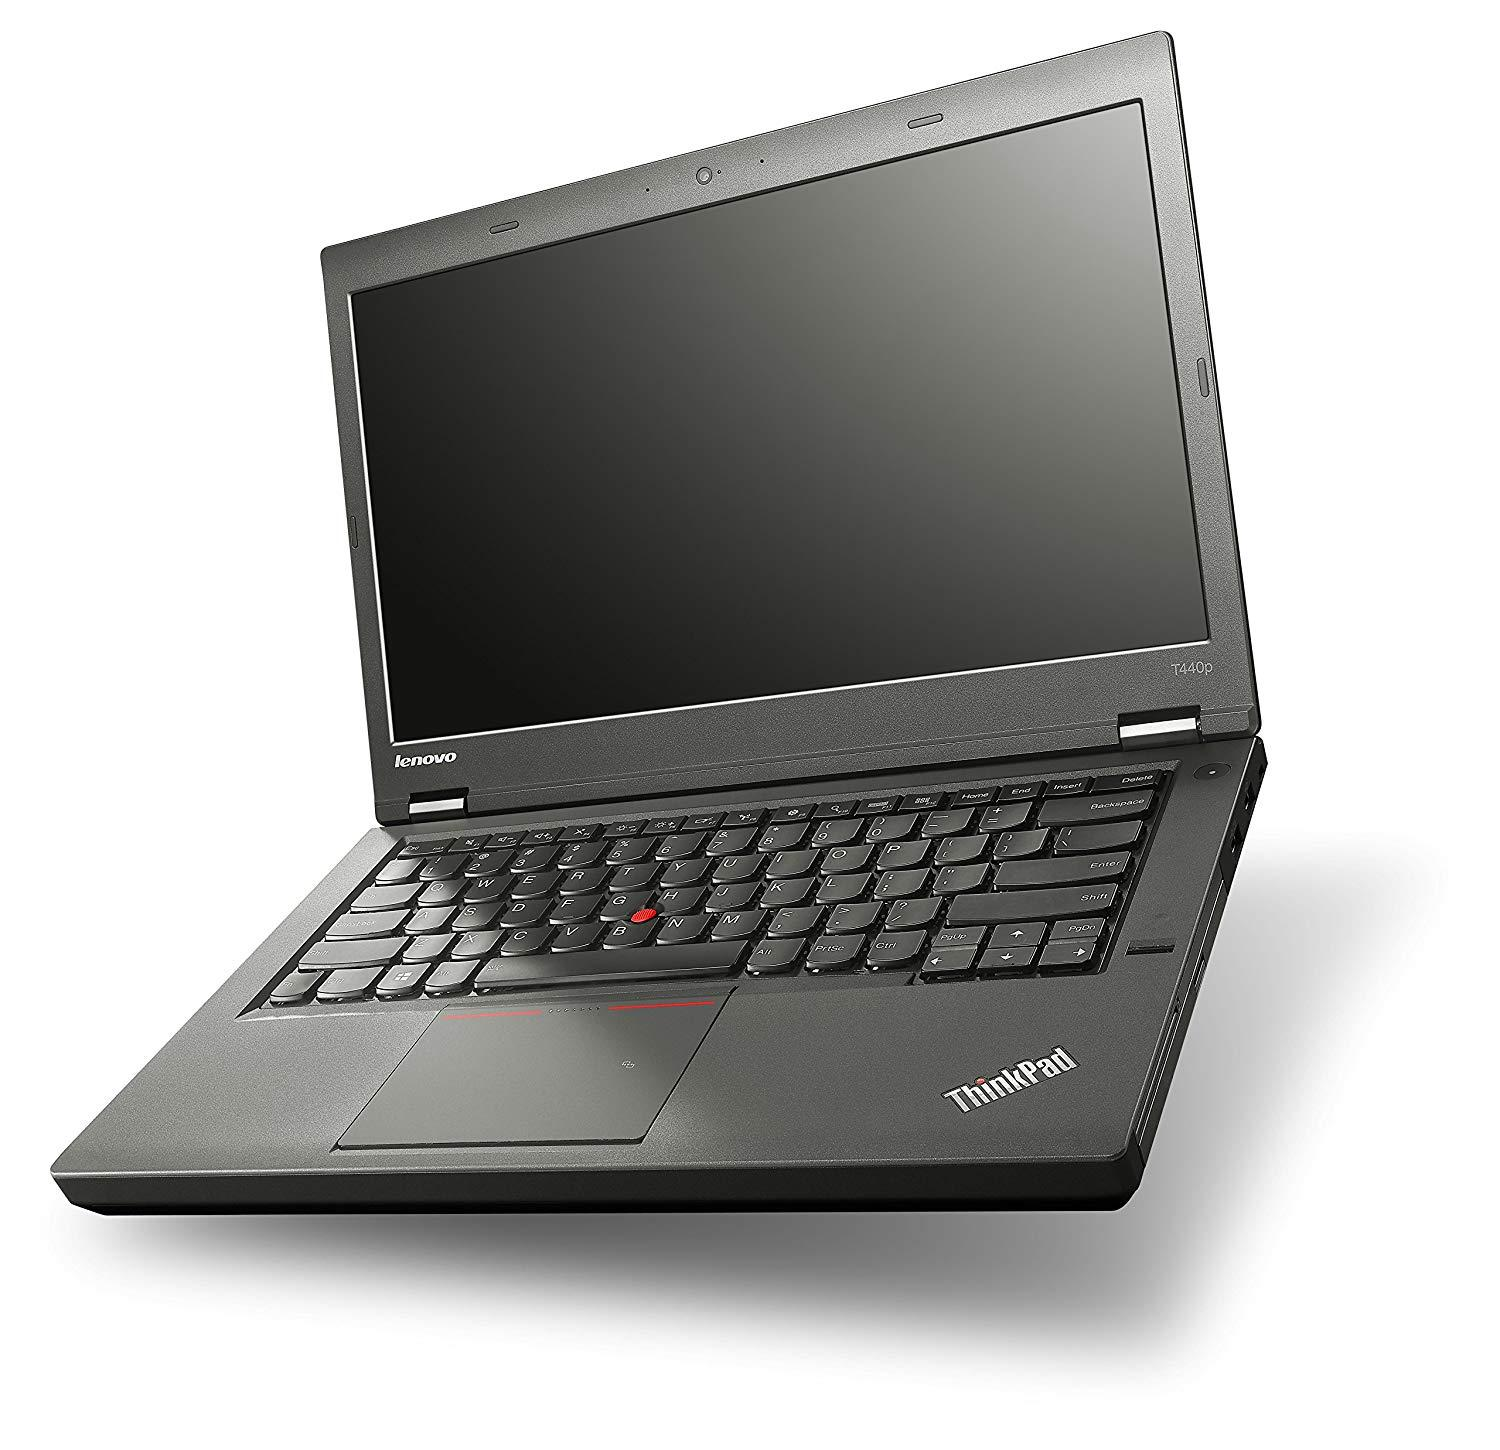 (Refurbished) Lenovo ThinkPad T440p High Performance Business Laptop - 14